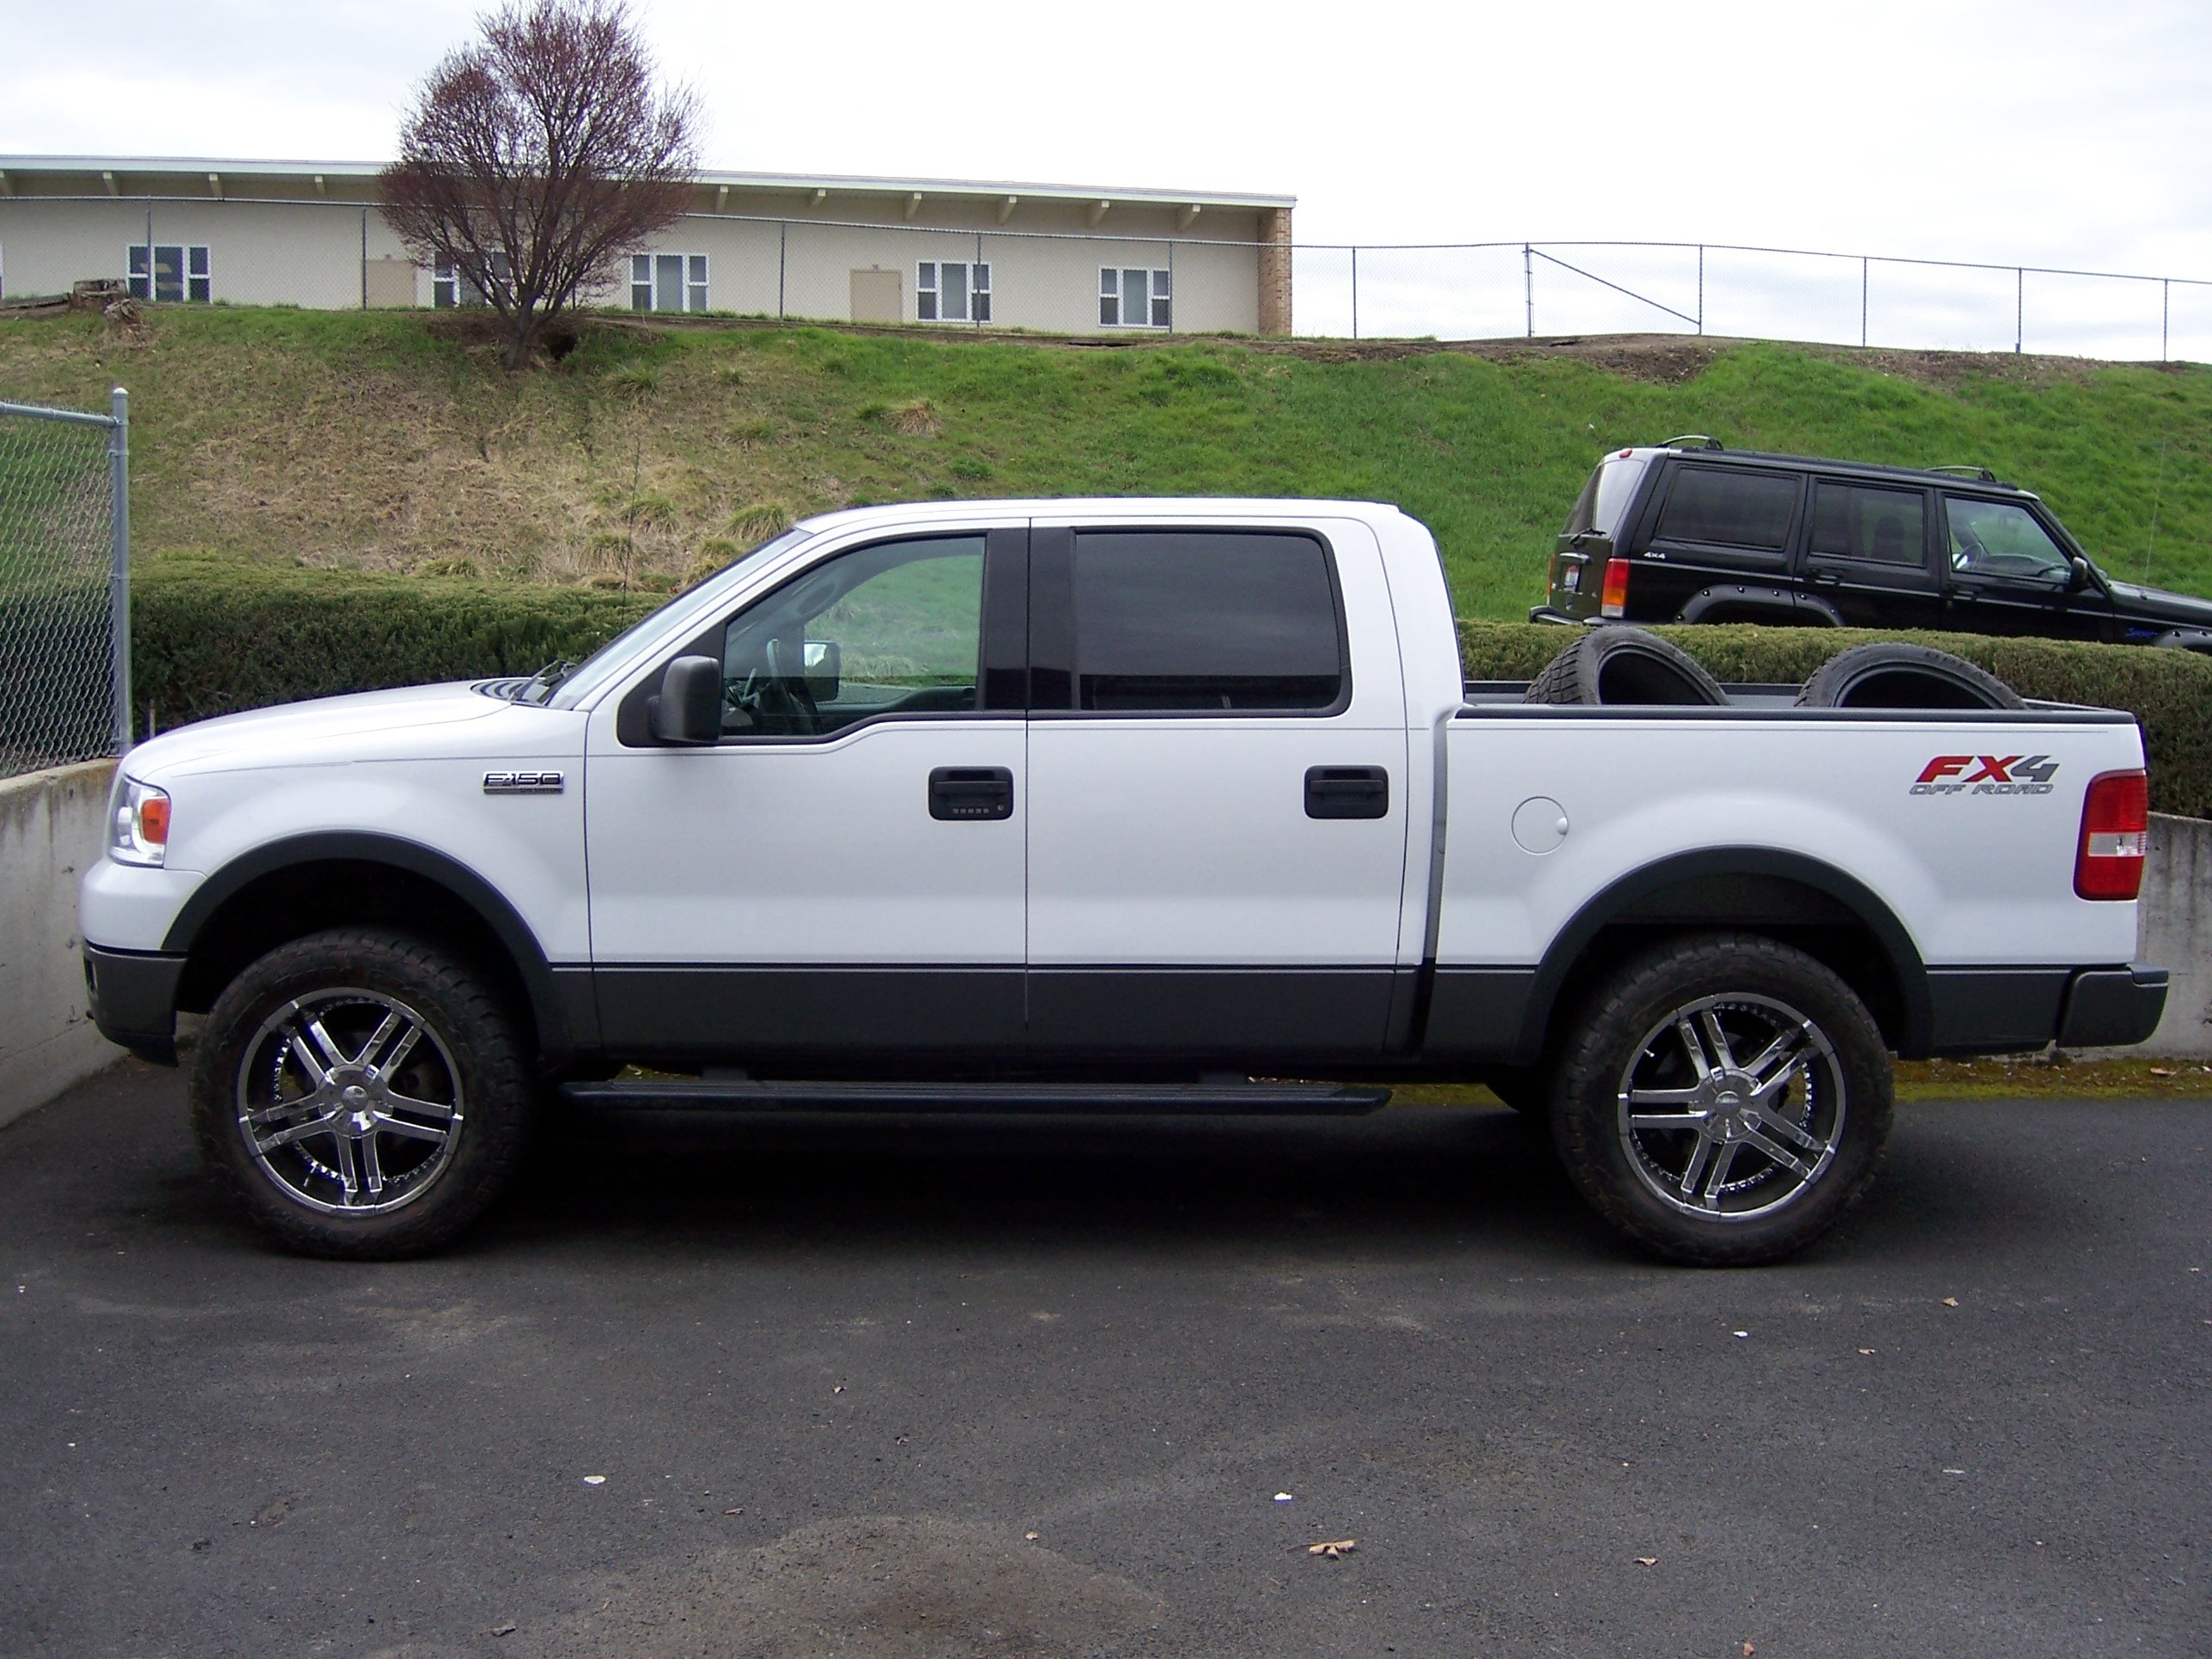 817gabe 2004 ford f150 regular cab specs photos modification info at cardomain. Black Bedroom Furniture Sets. Home Design Ideas